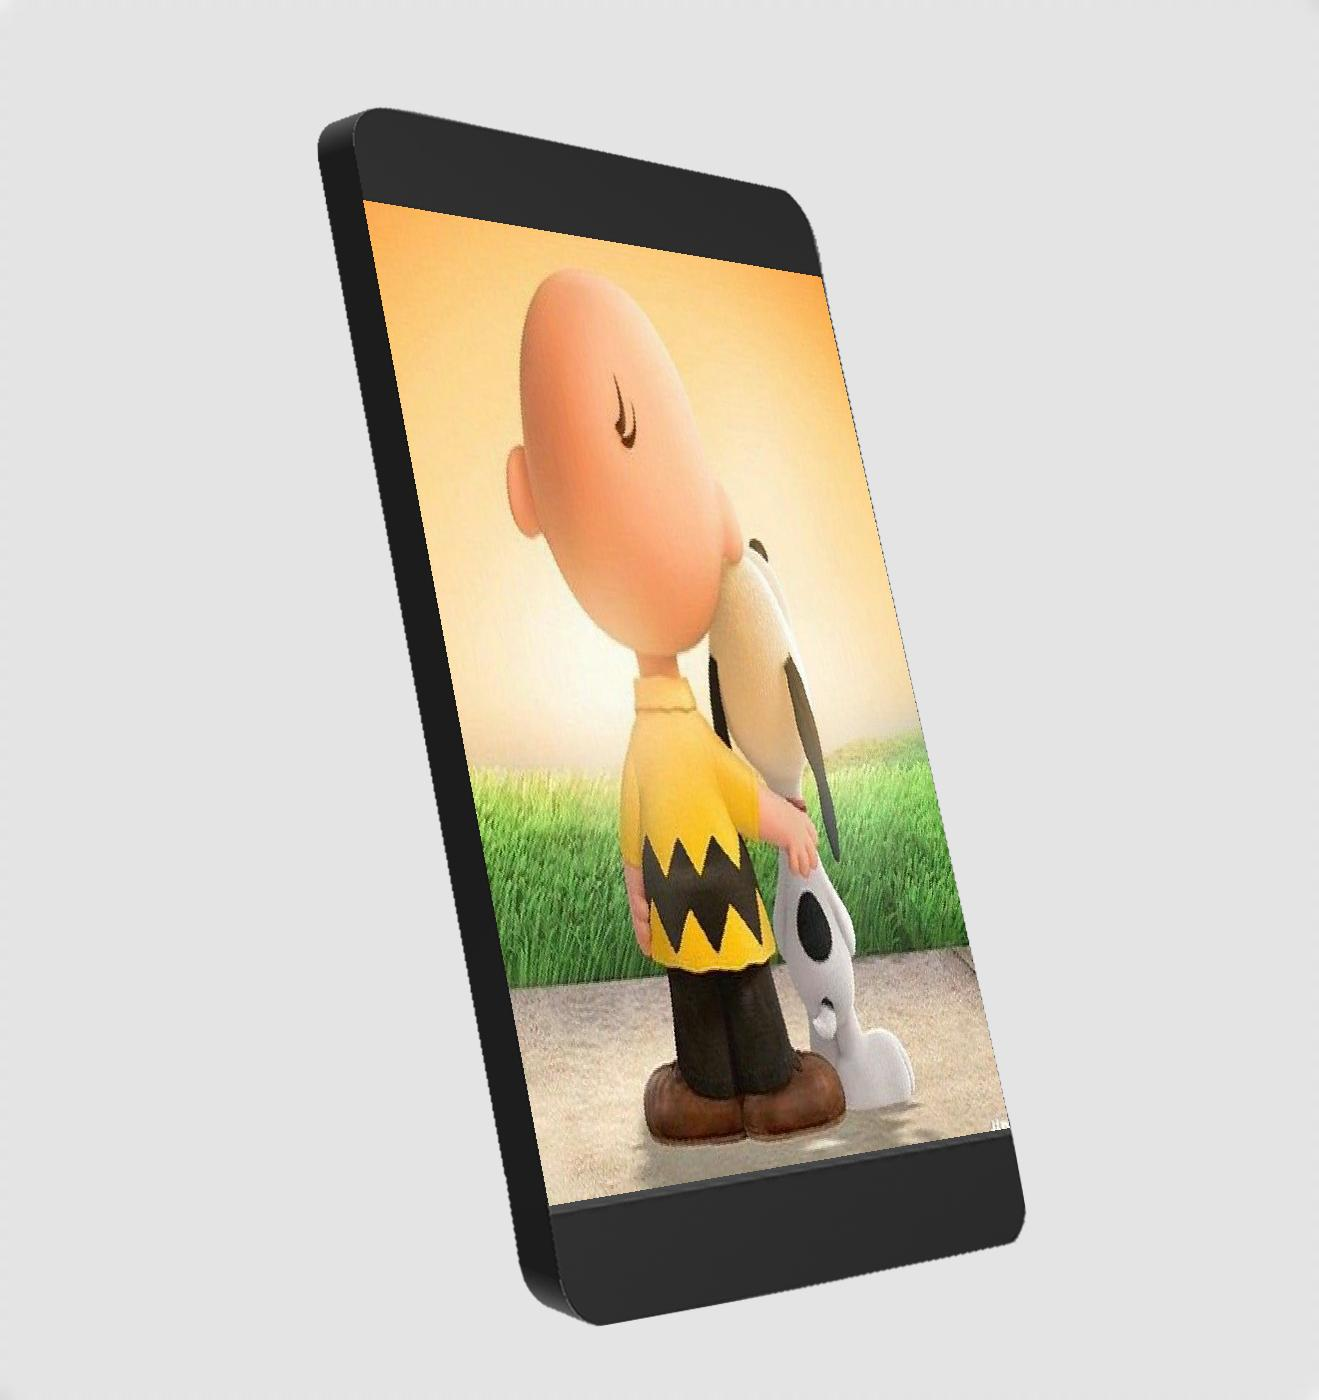 Charlie Brown Wallpaper For Android Apk Download